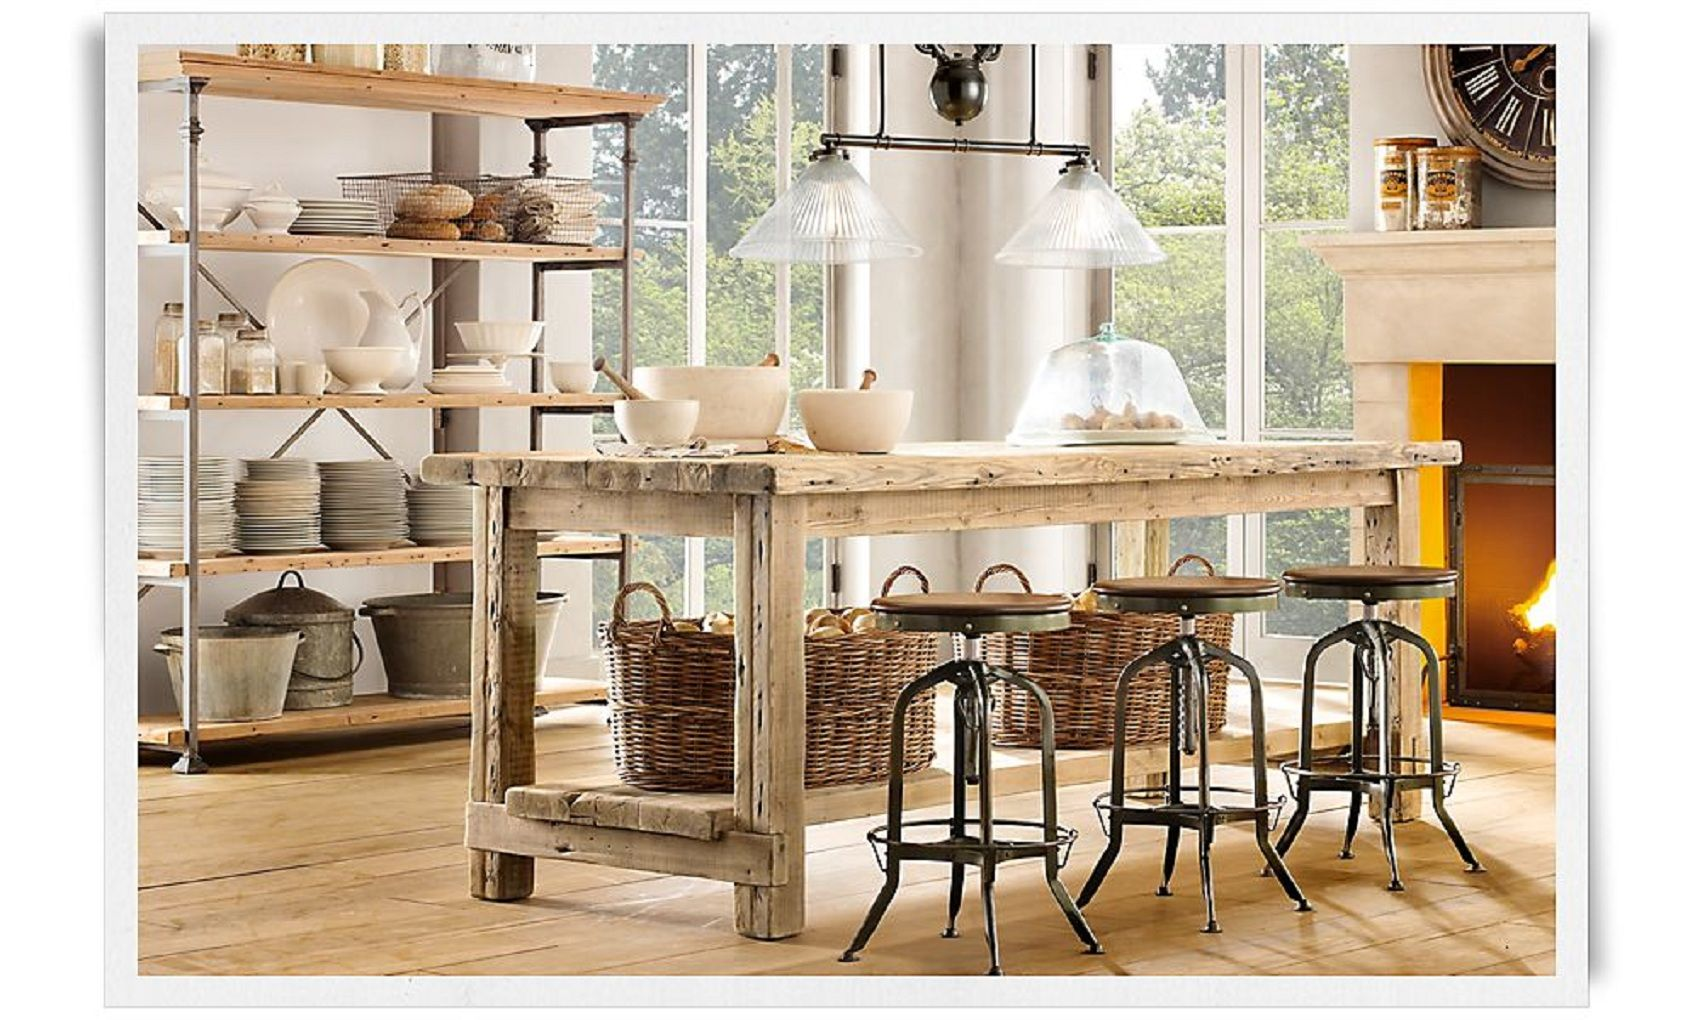 restoration hardware kitchen table ikea cabinet sale industrial chic dining room style interior